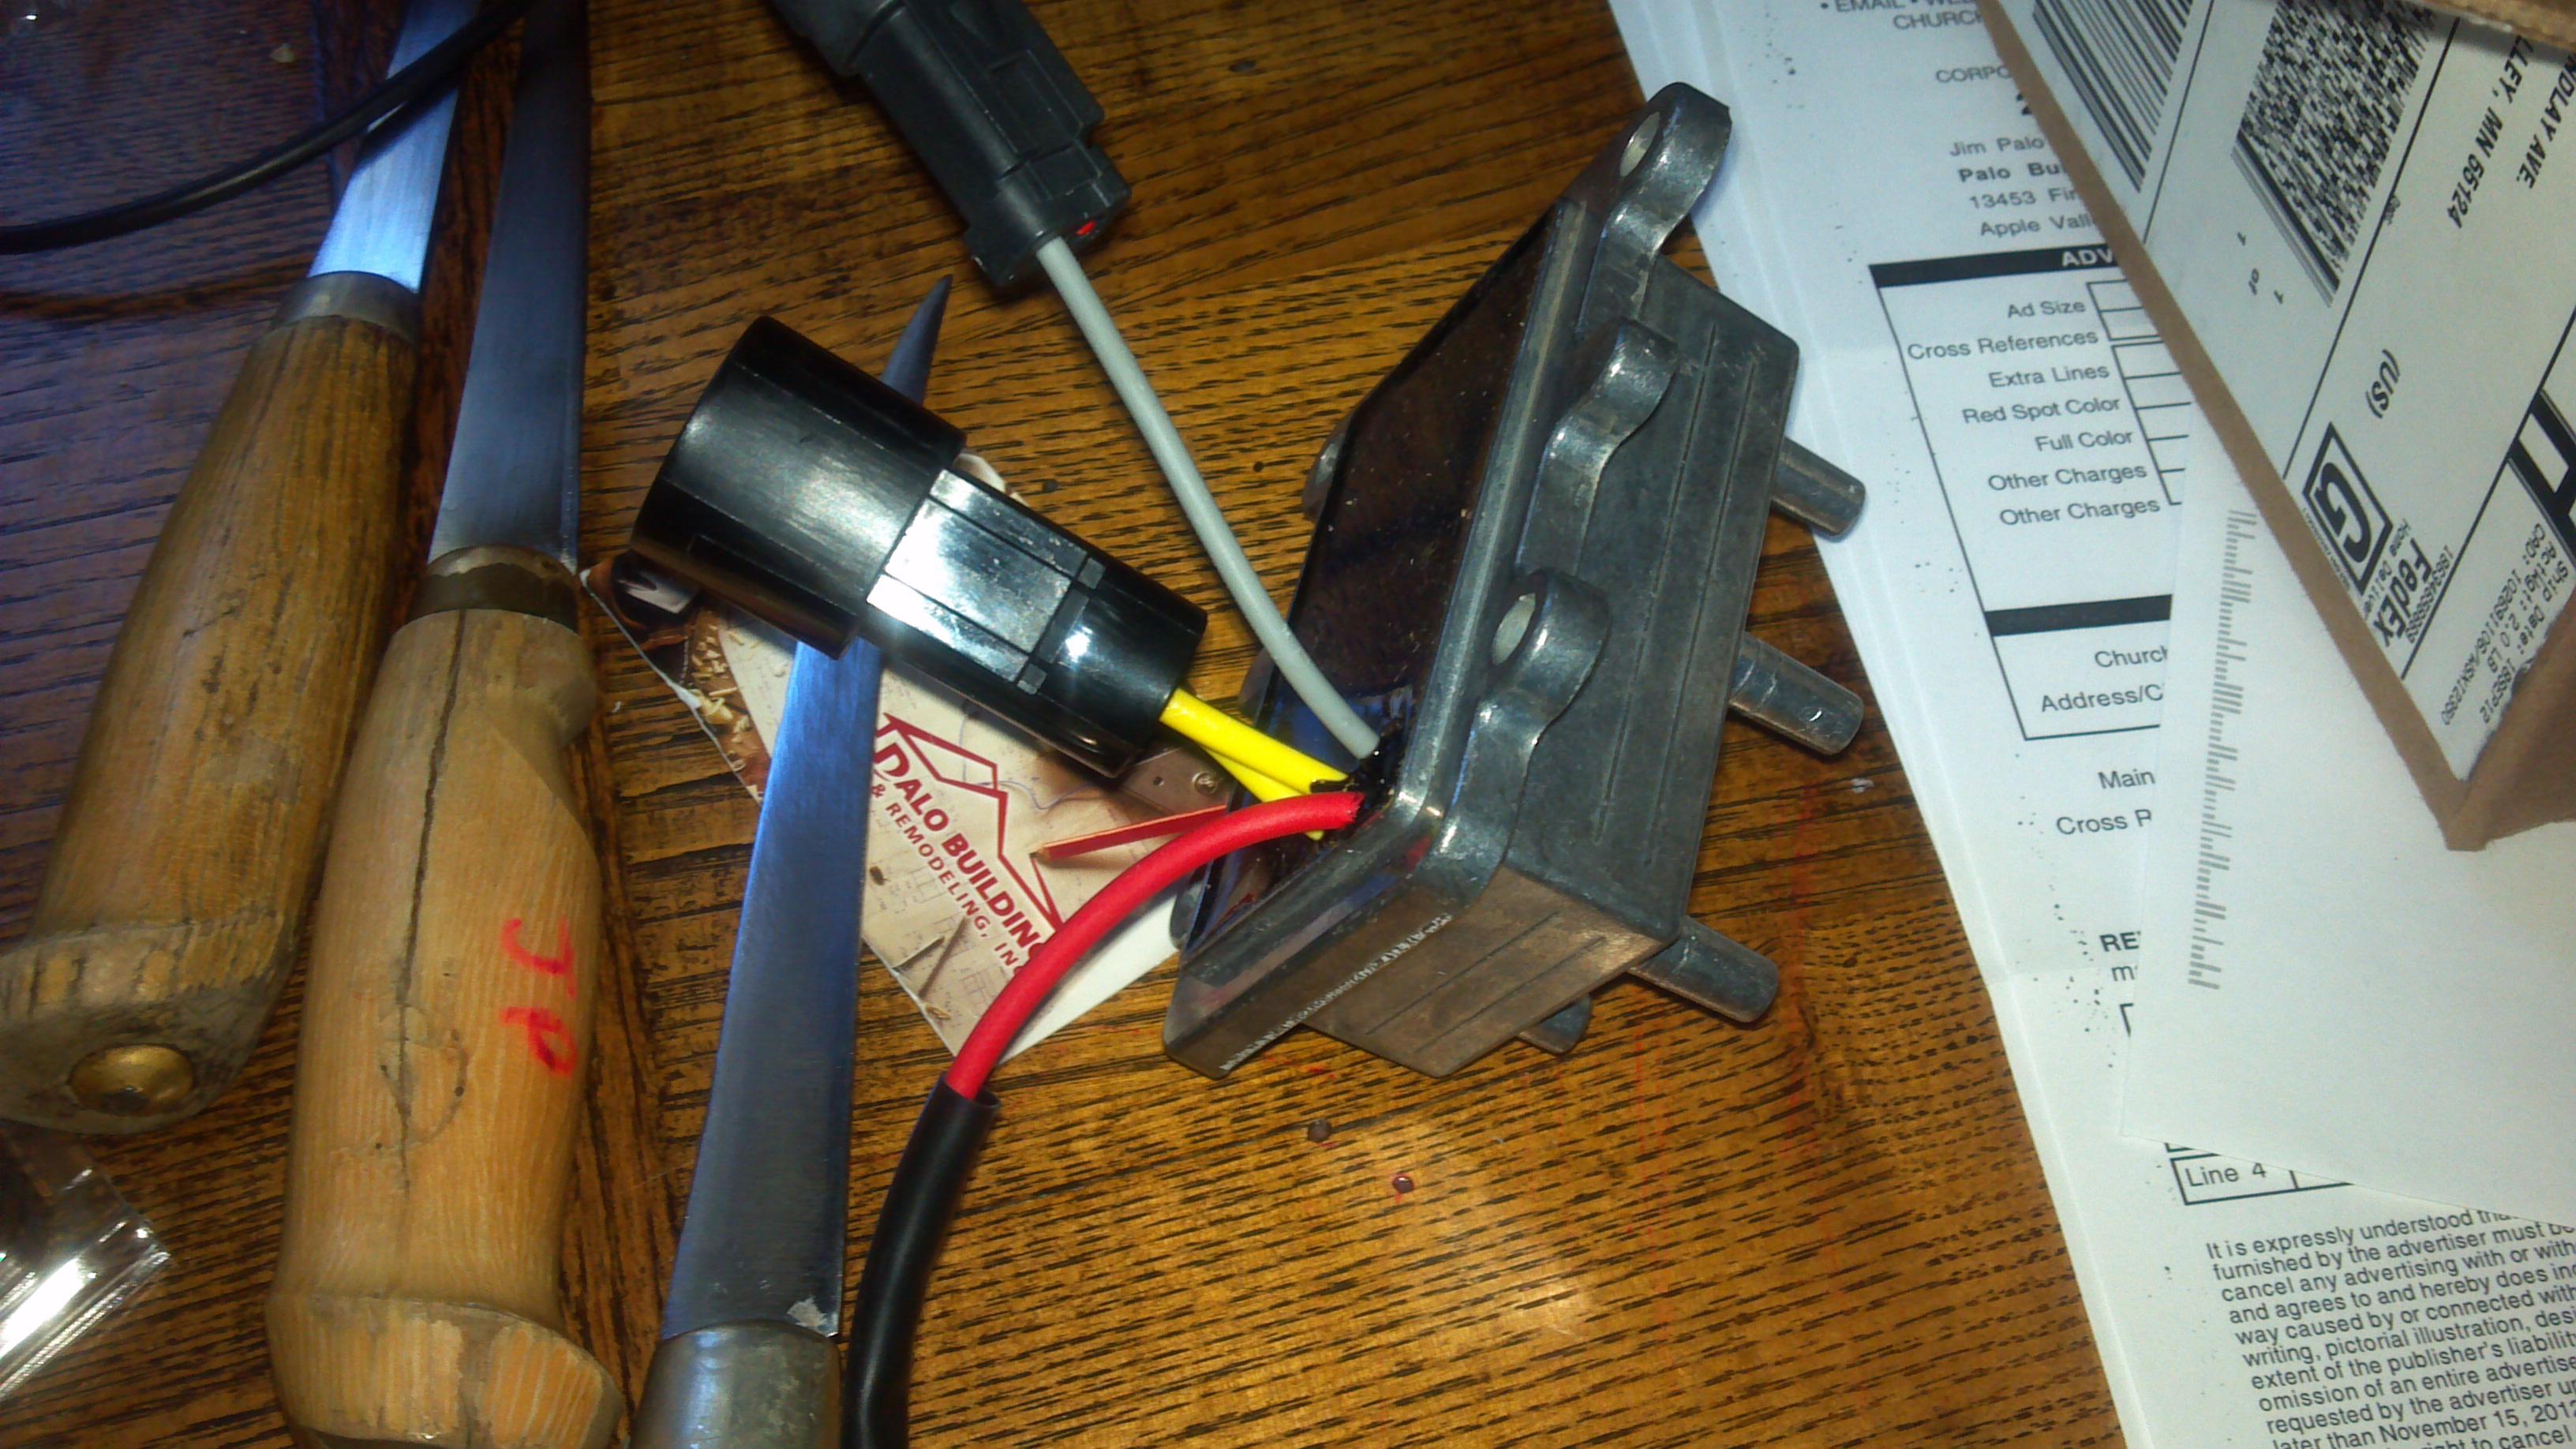 My 98 115 evinrude tach stopped working Replaced tach still